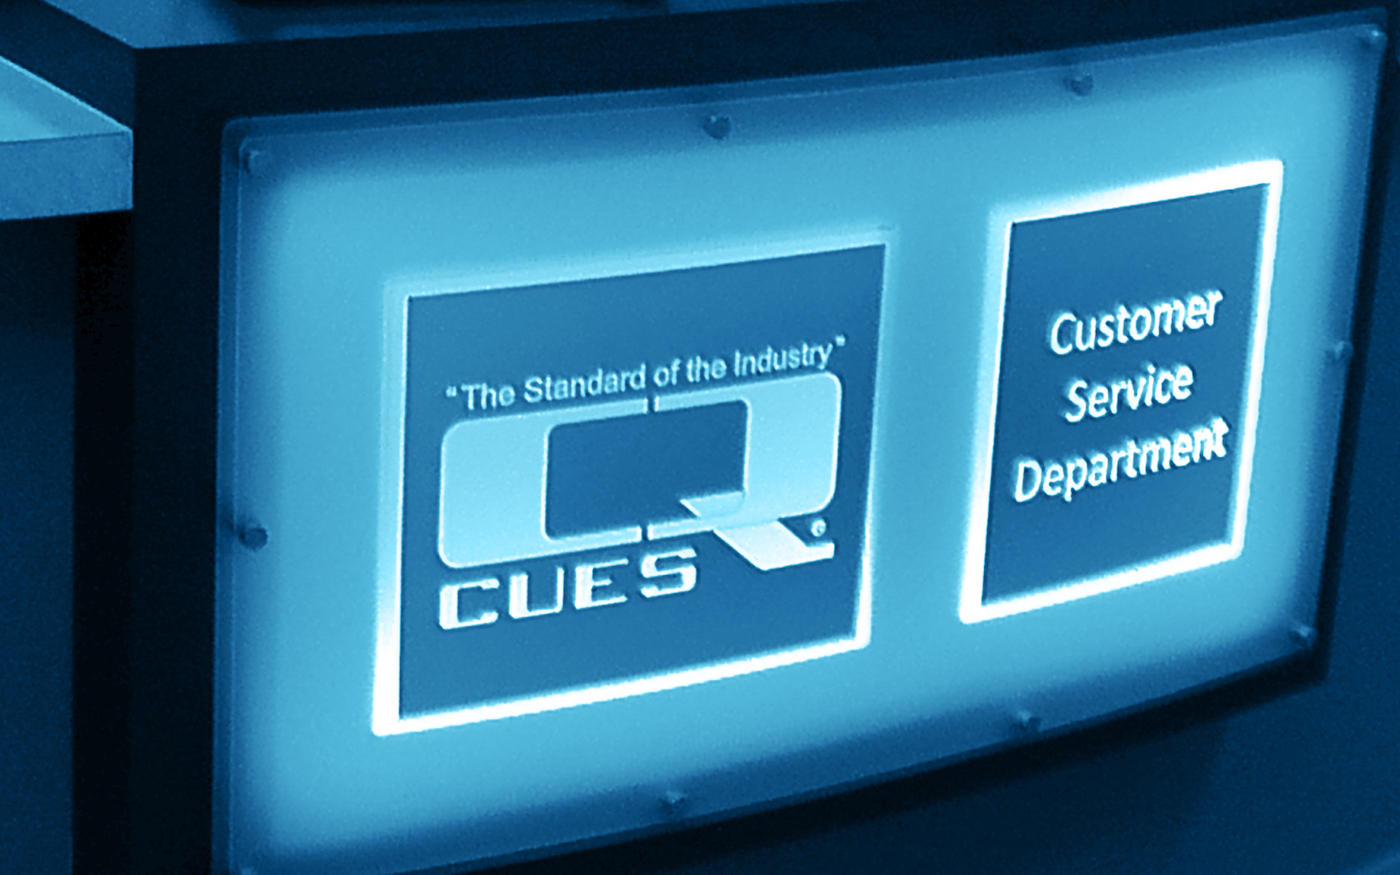 ​CUES provides industry customer service.